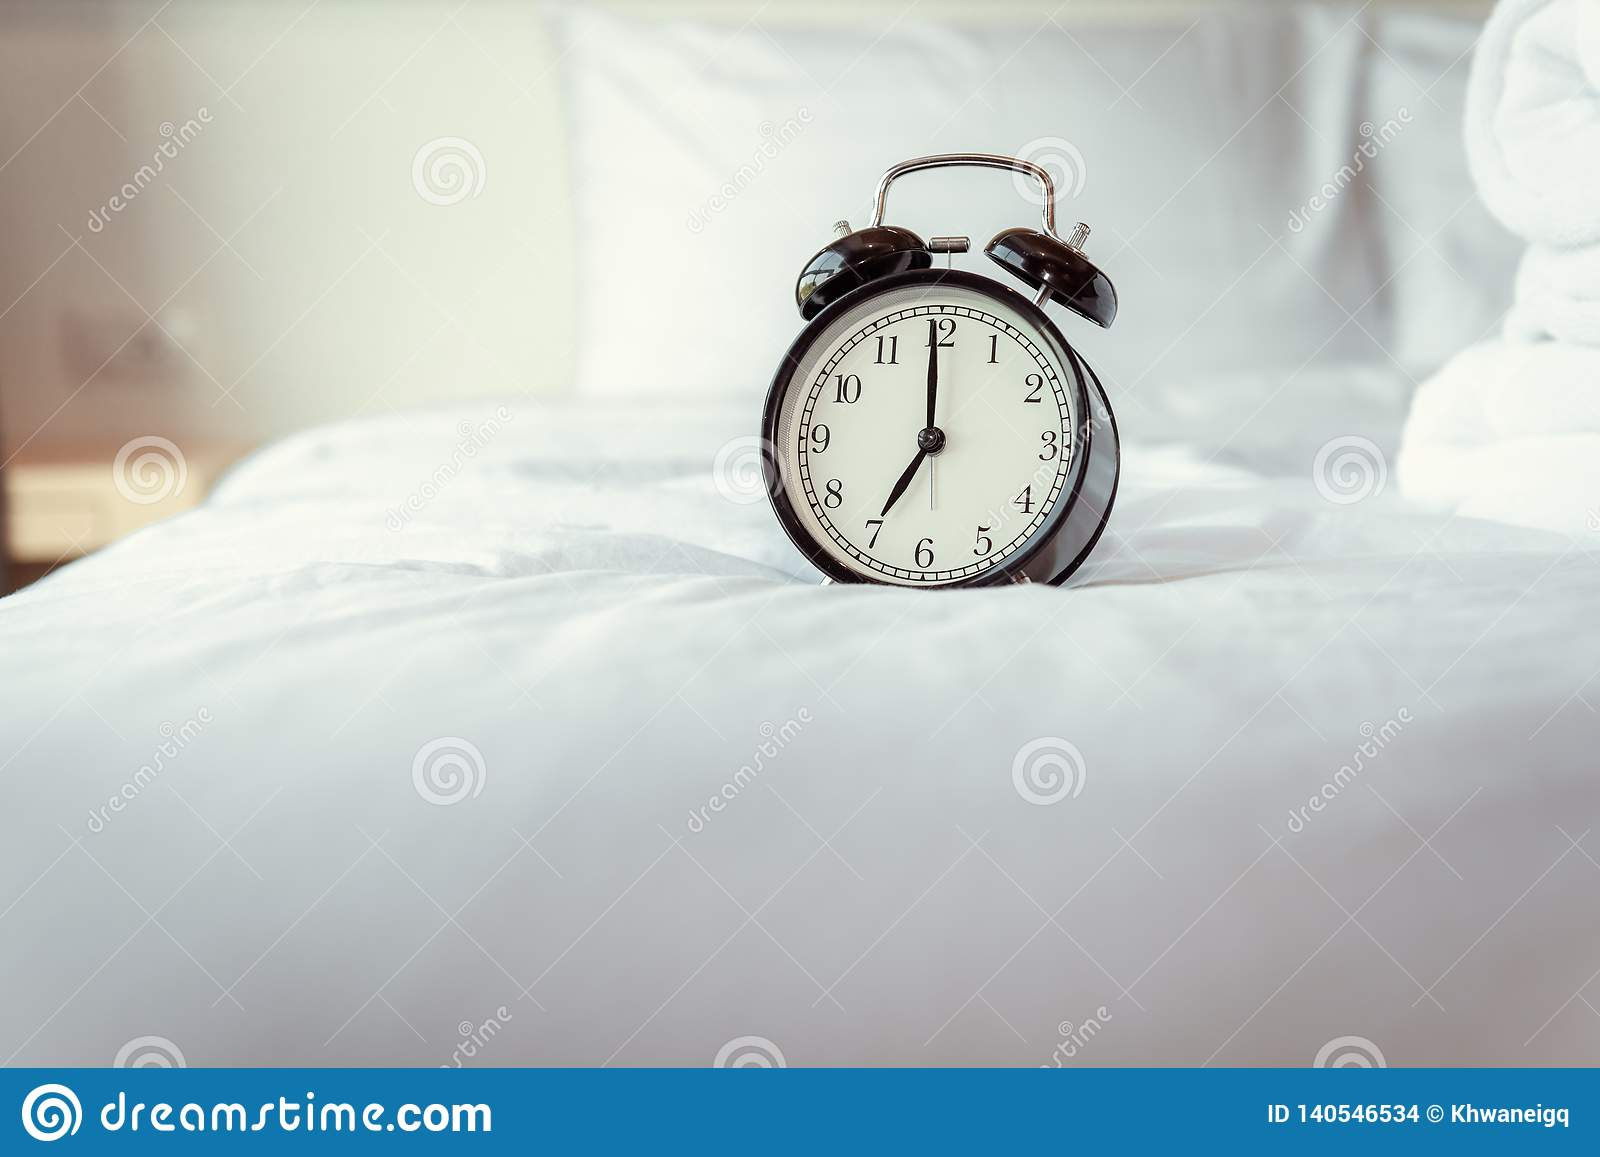 Analog Alarm Clock On Bedroom In Modern House, Retro Timer At 7.00 ...